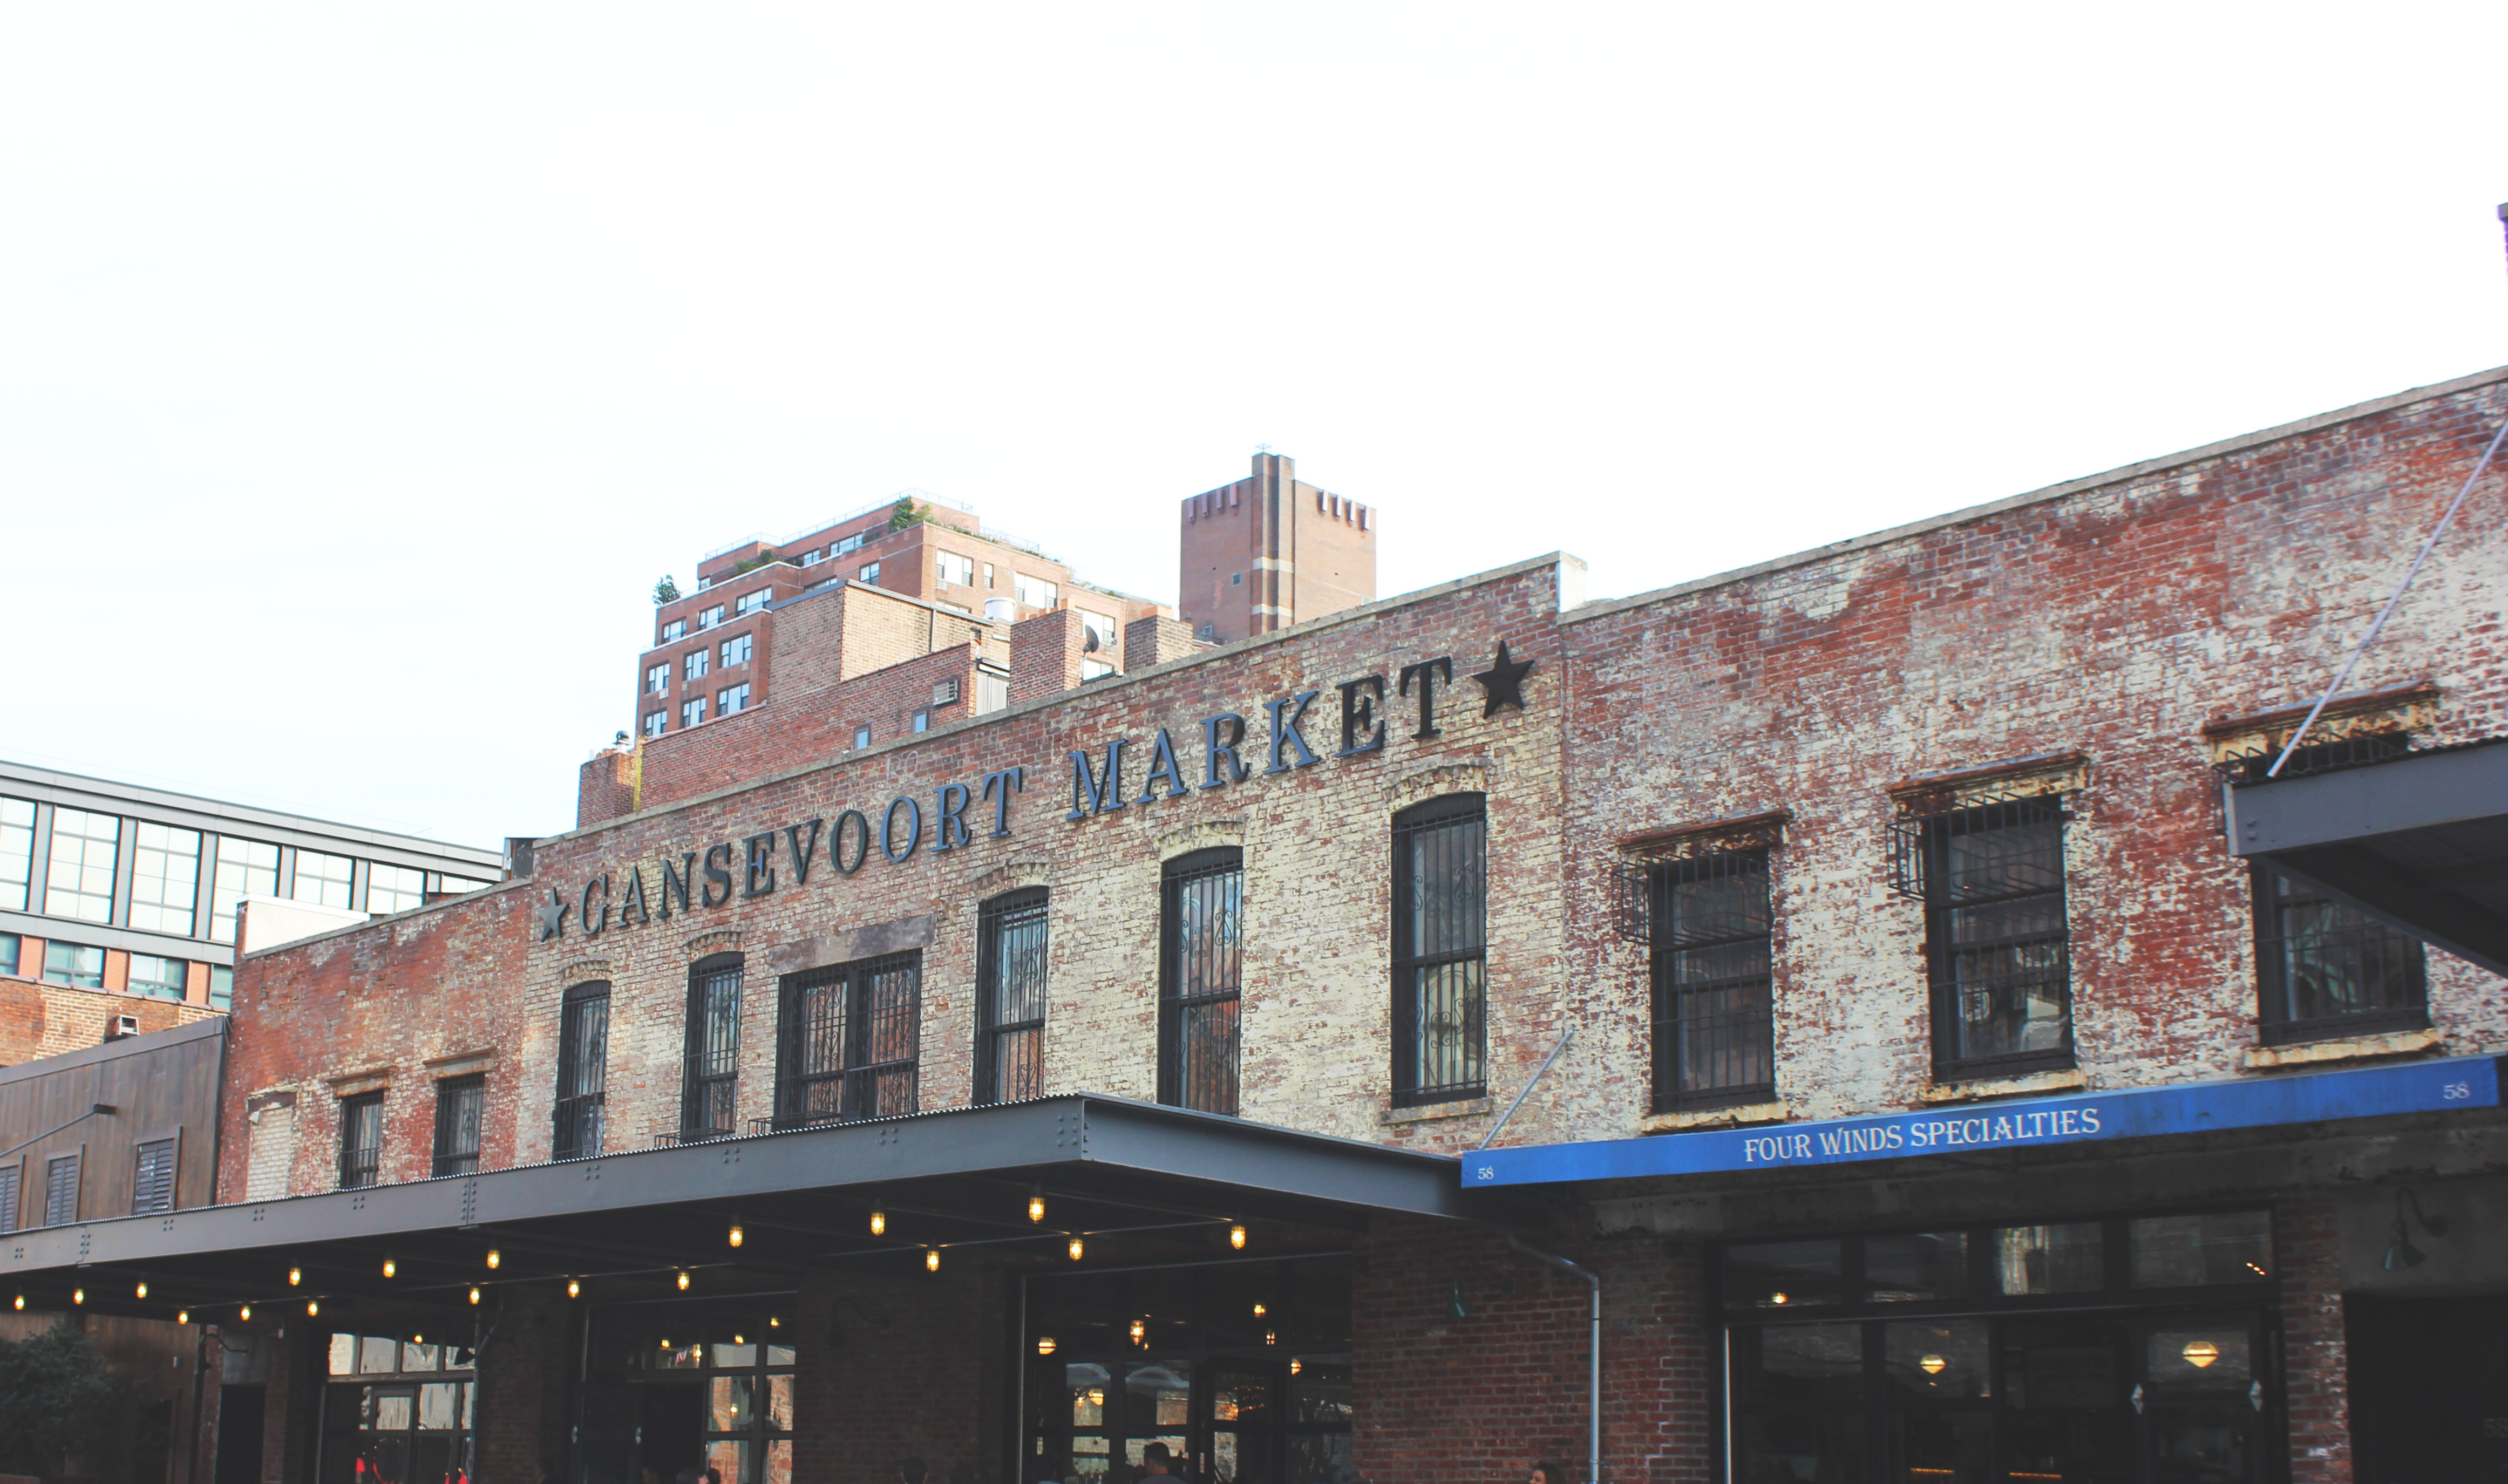 Gansevoort Market, New York